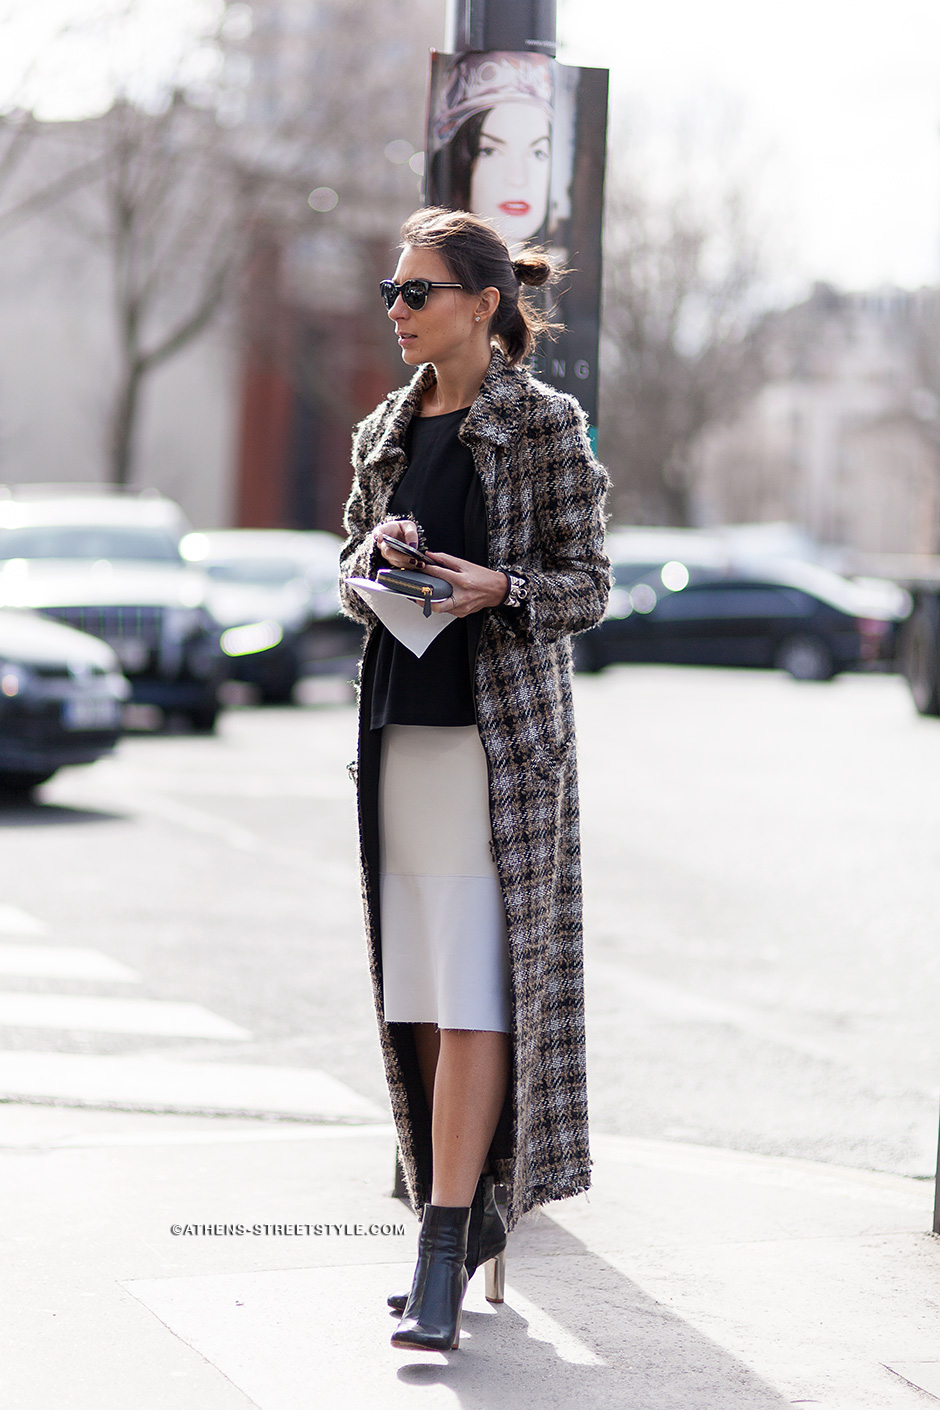 7788-Athens-Streetstyle-Woman-Long-Coat-After-Celine-Paris-Fashion-Week-Fall-Winter-2014-2015-Street-Style